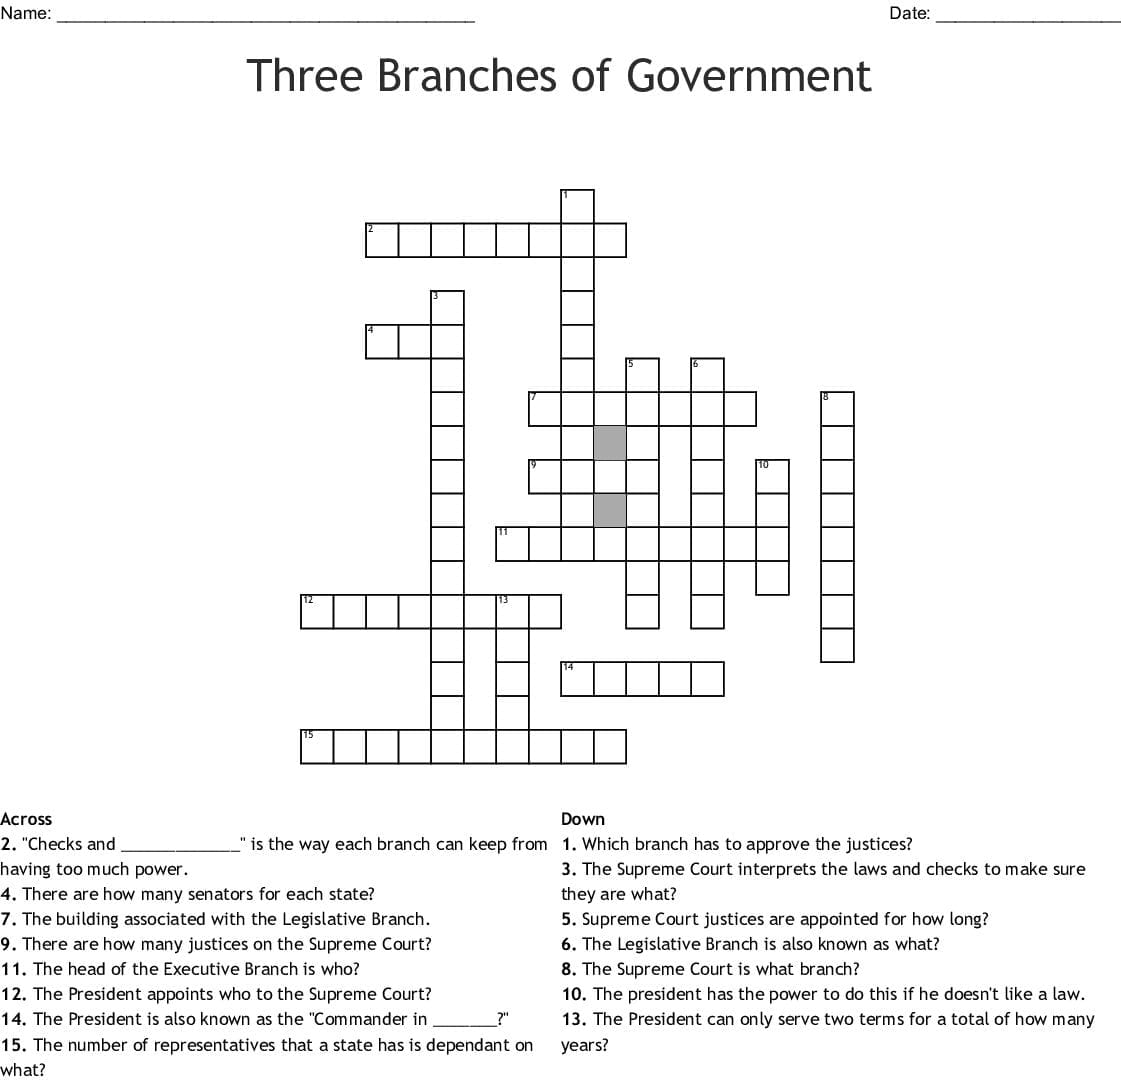 Three Branches Of Ernment Crossword Word